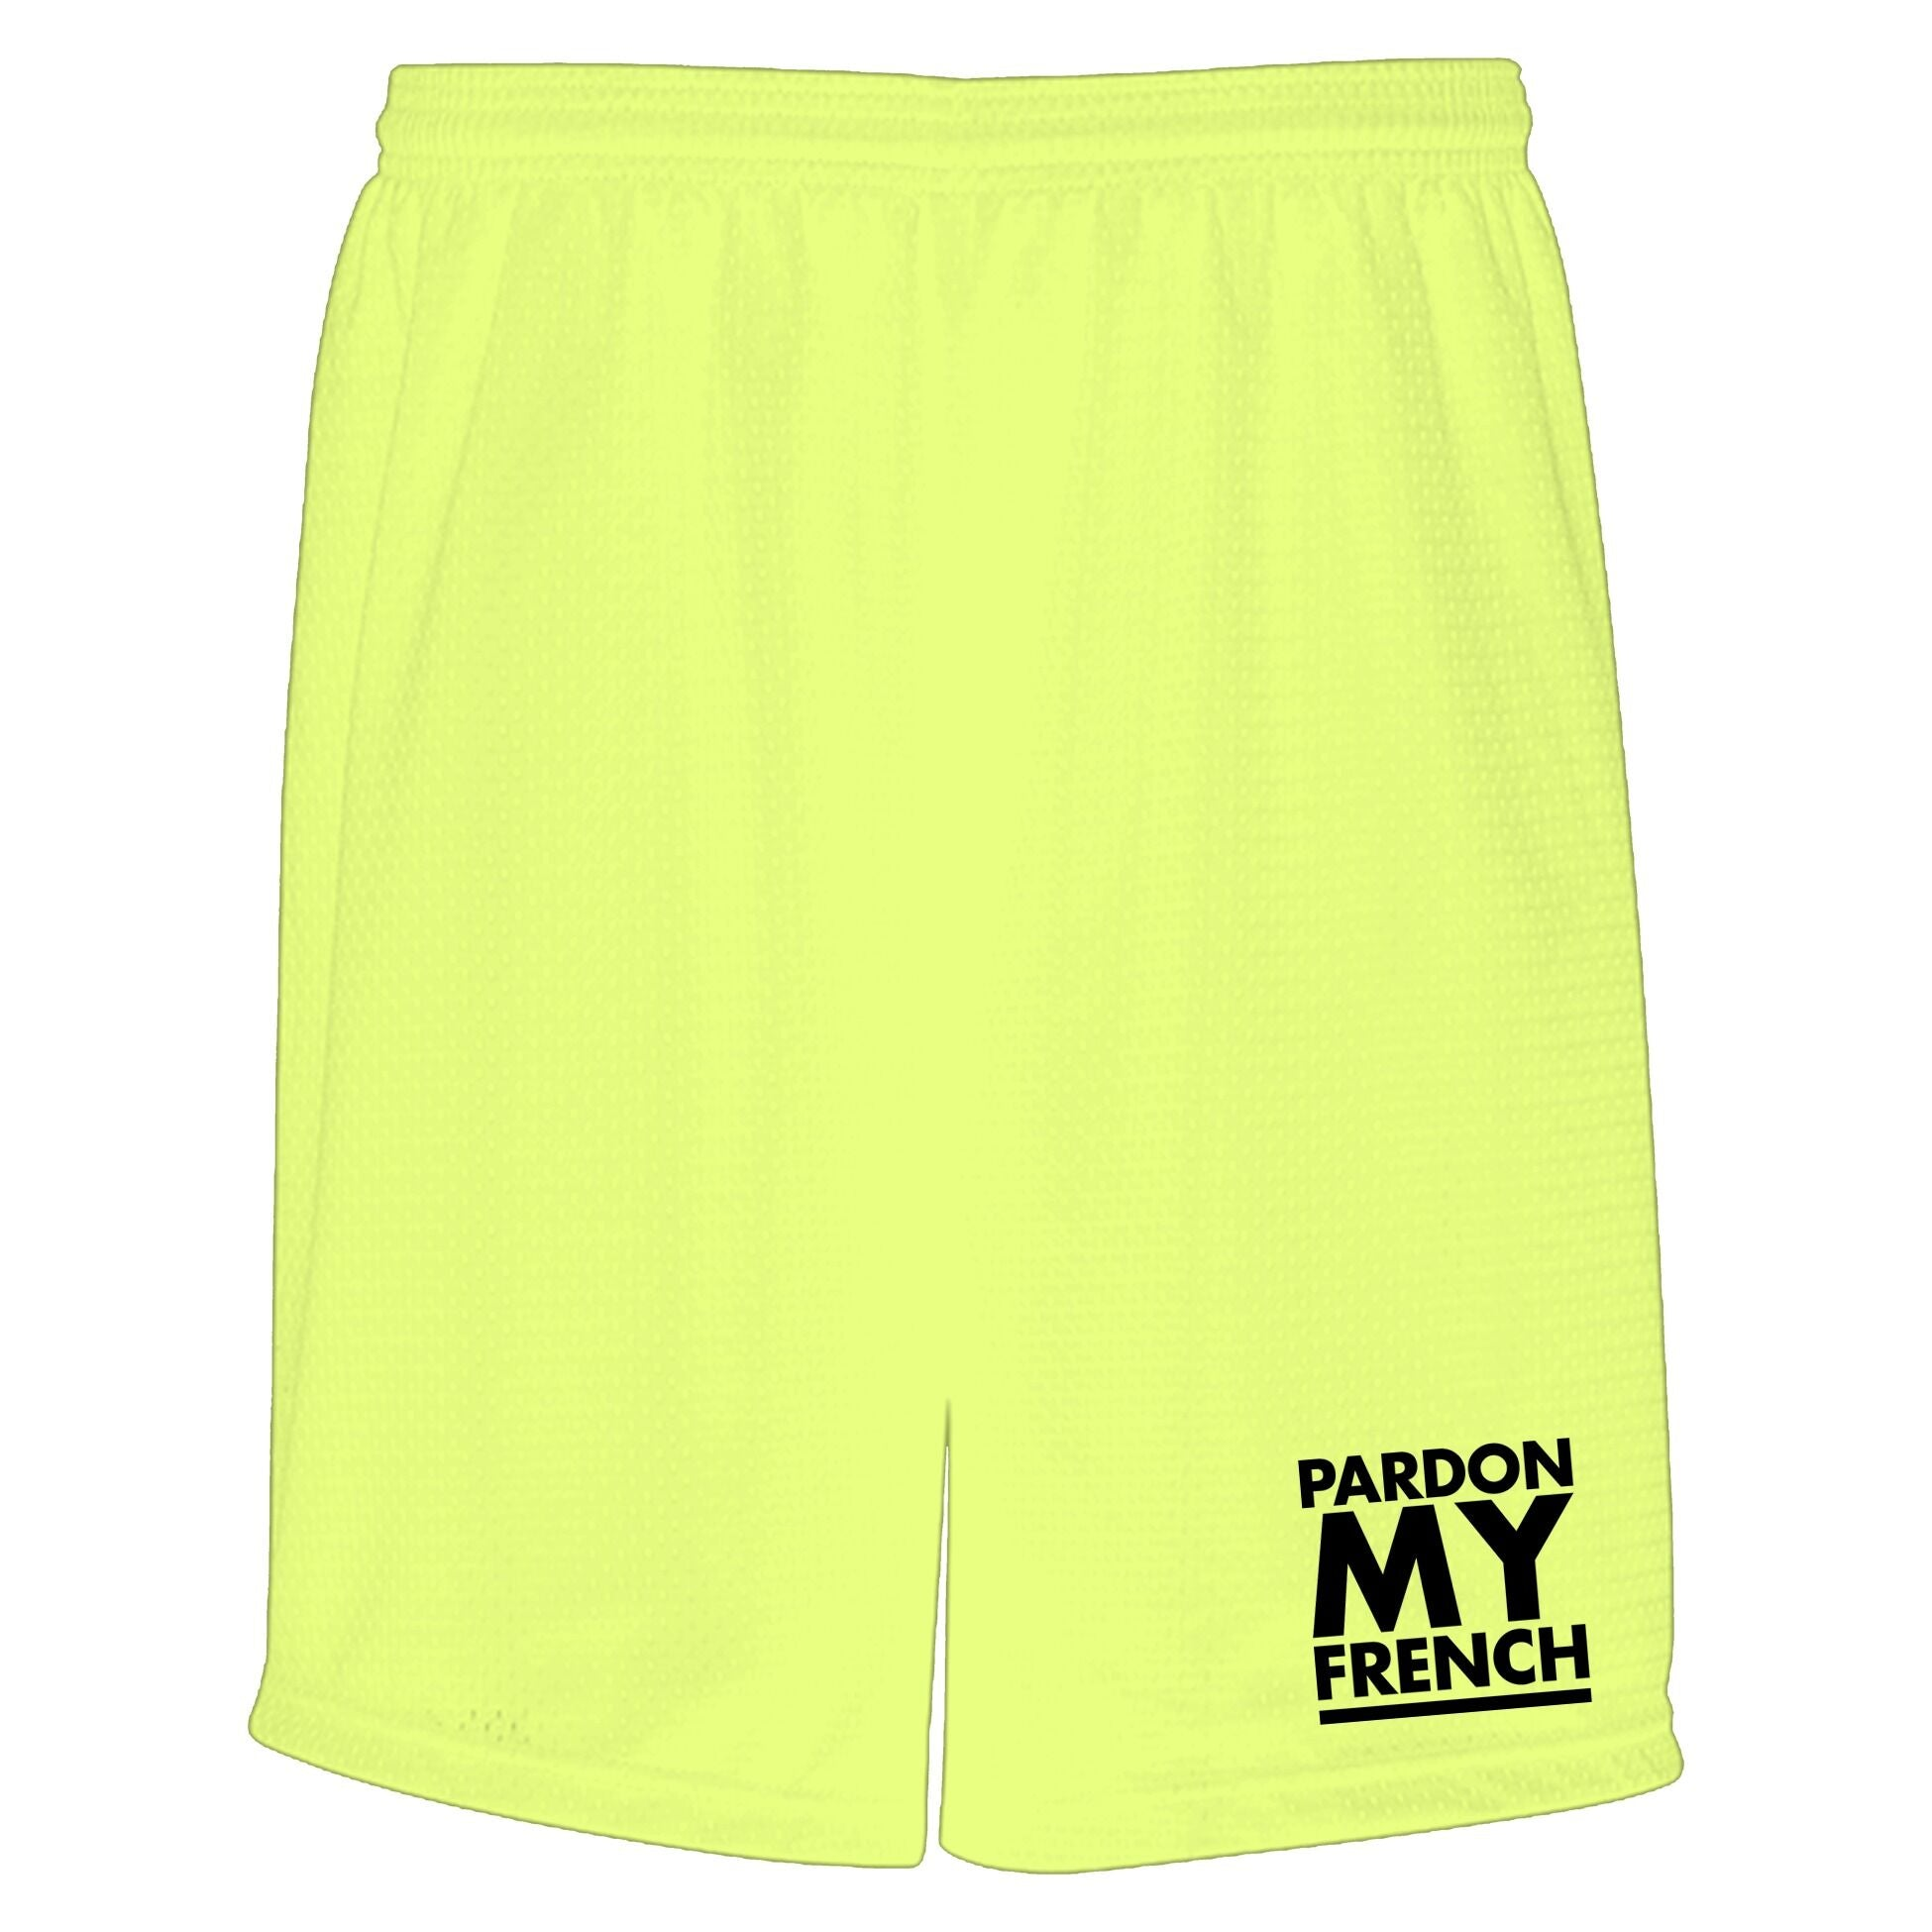 TRUNKS PMF CLASSIC LOGO NEON YELLOW